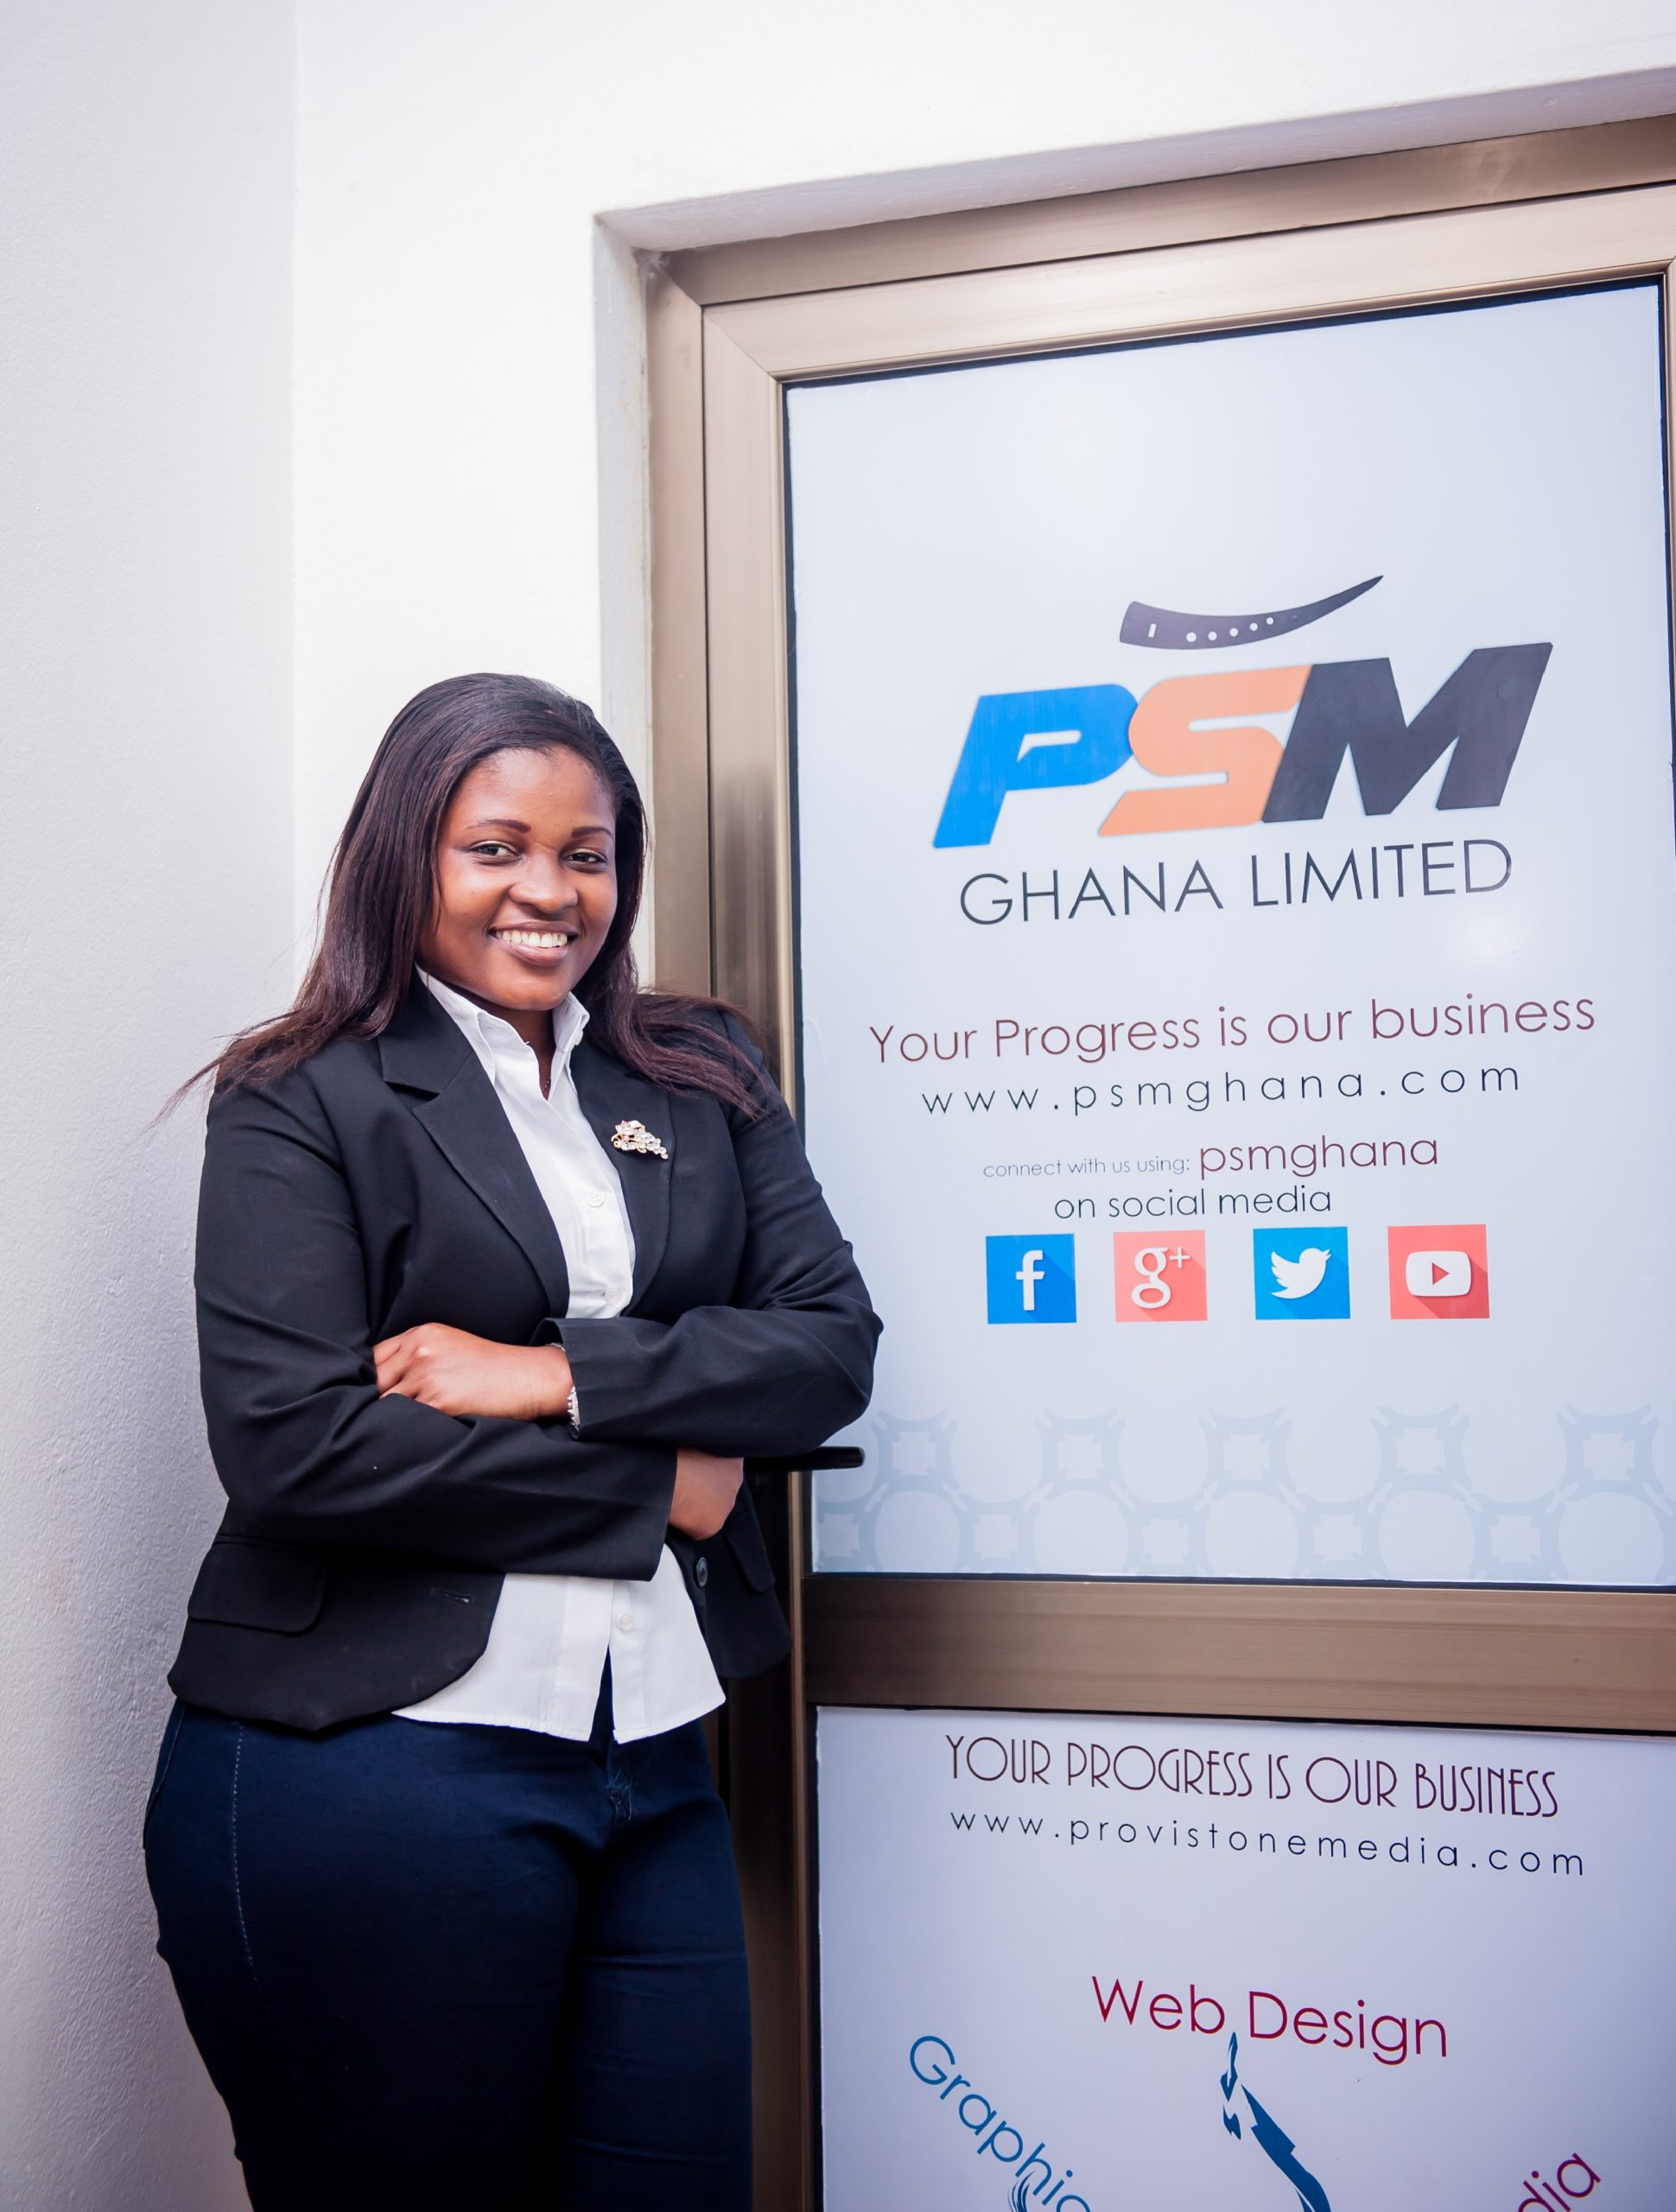 about psm ghana